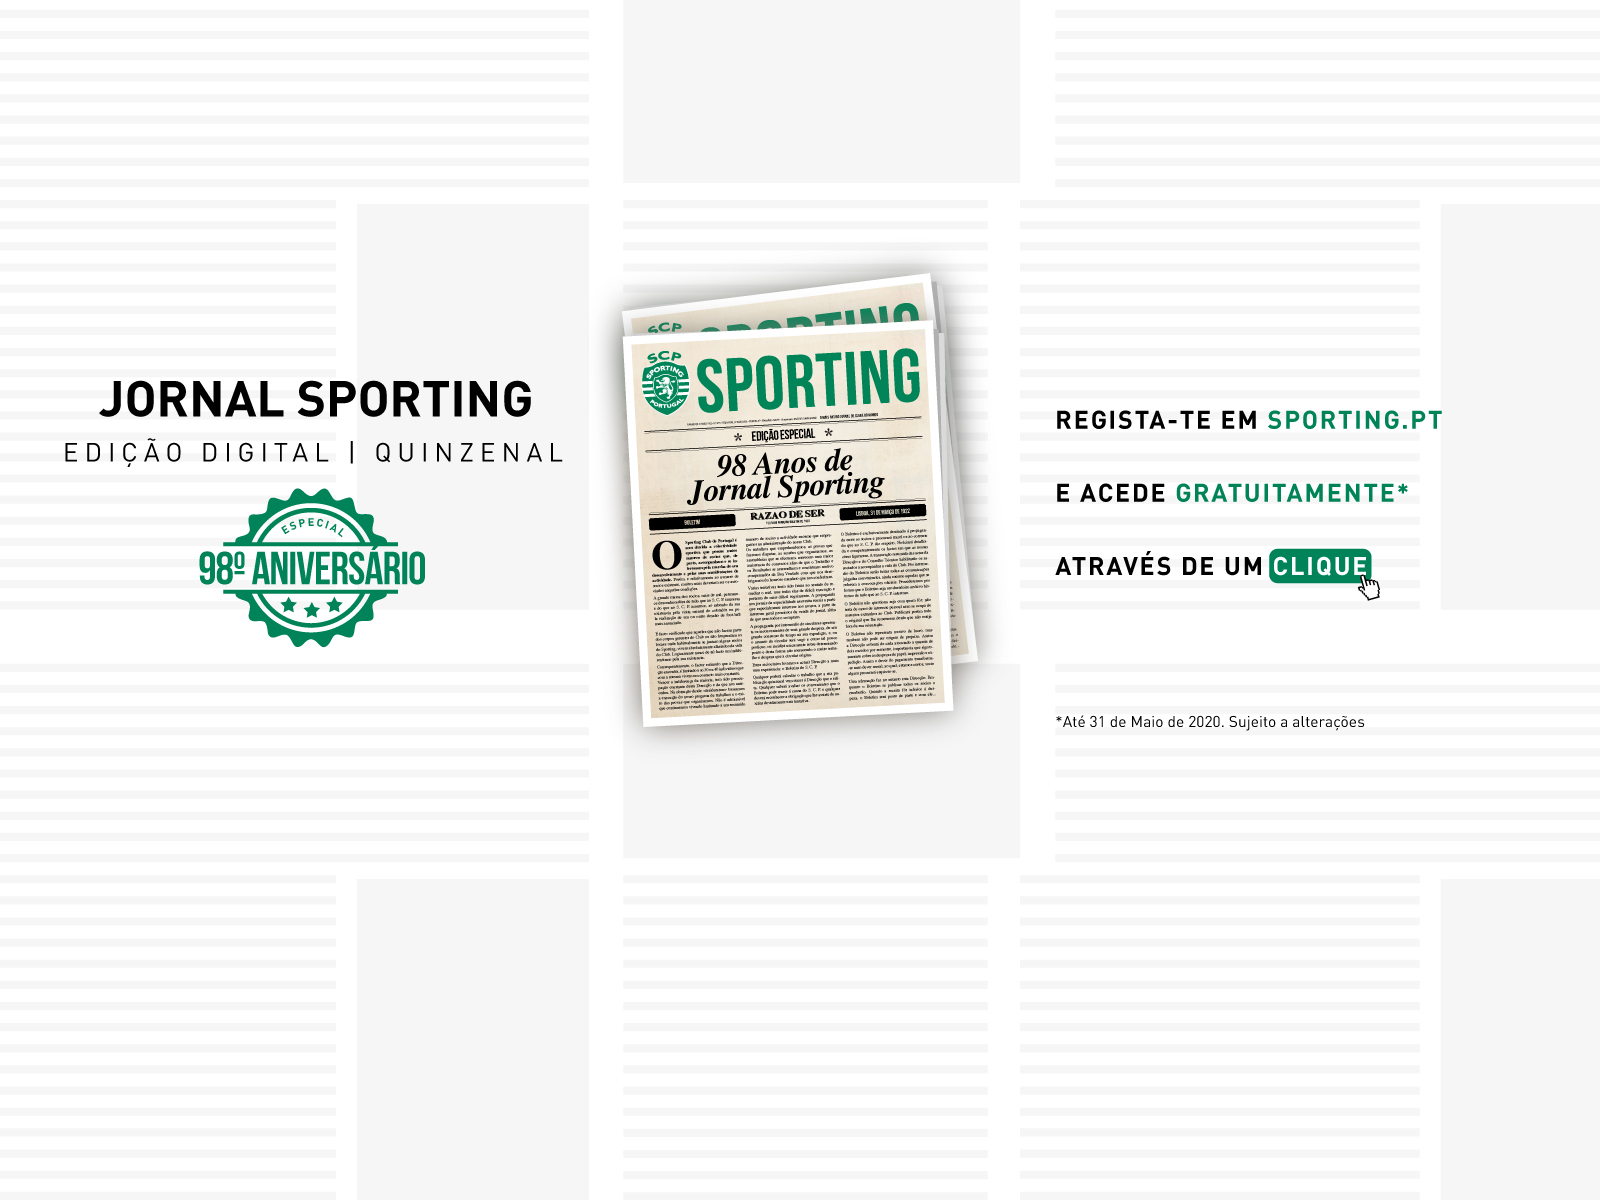 https://scpconteudos.pt/sites/default/files/revslider/image/Jornal-Sporting-Gratuito_Banner-HP.jpg